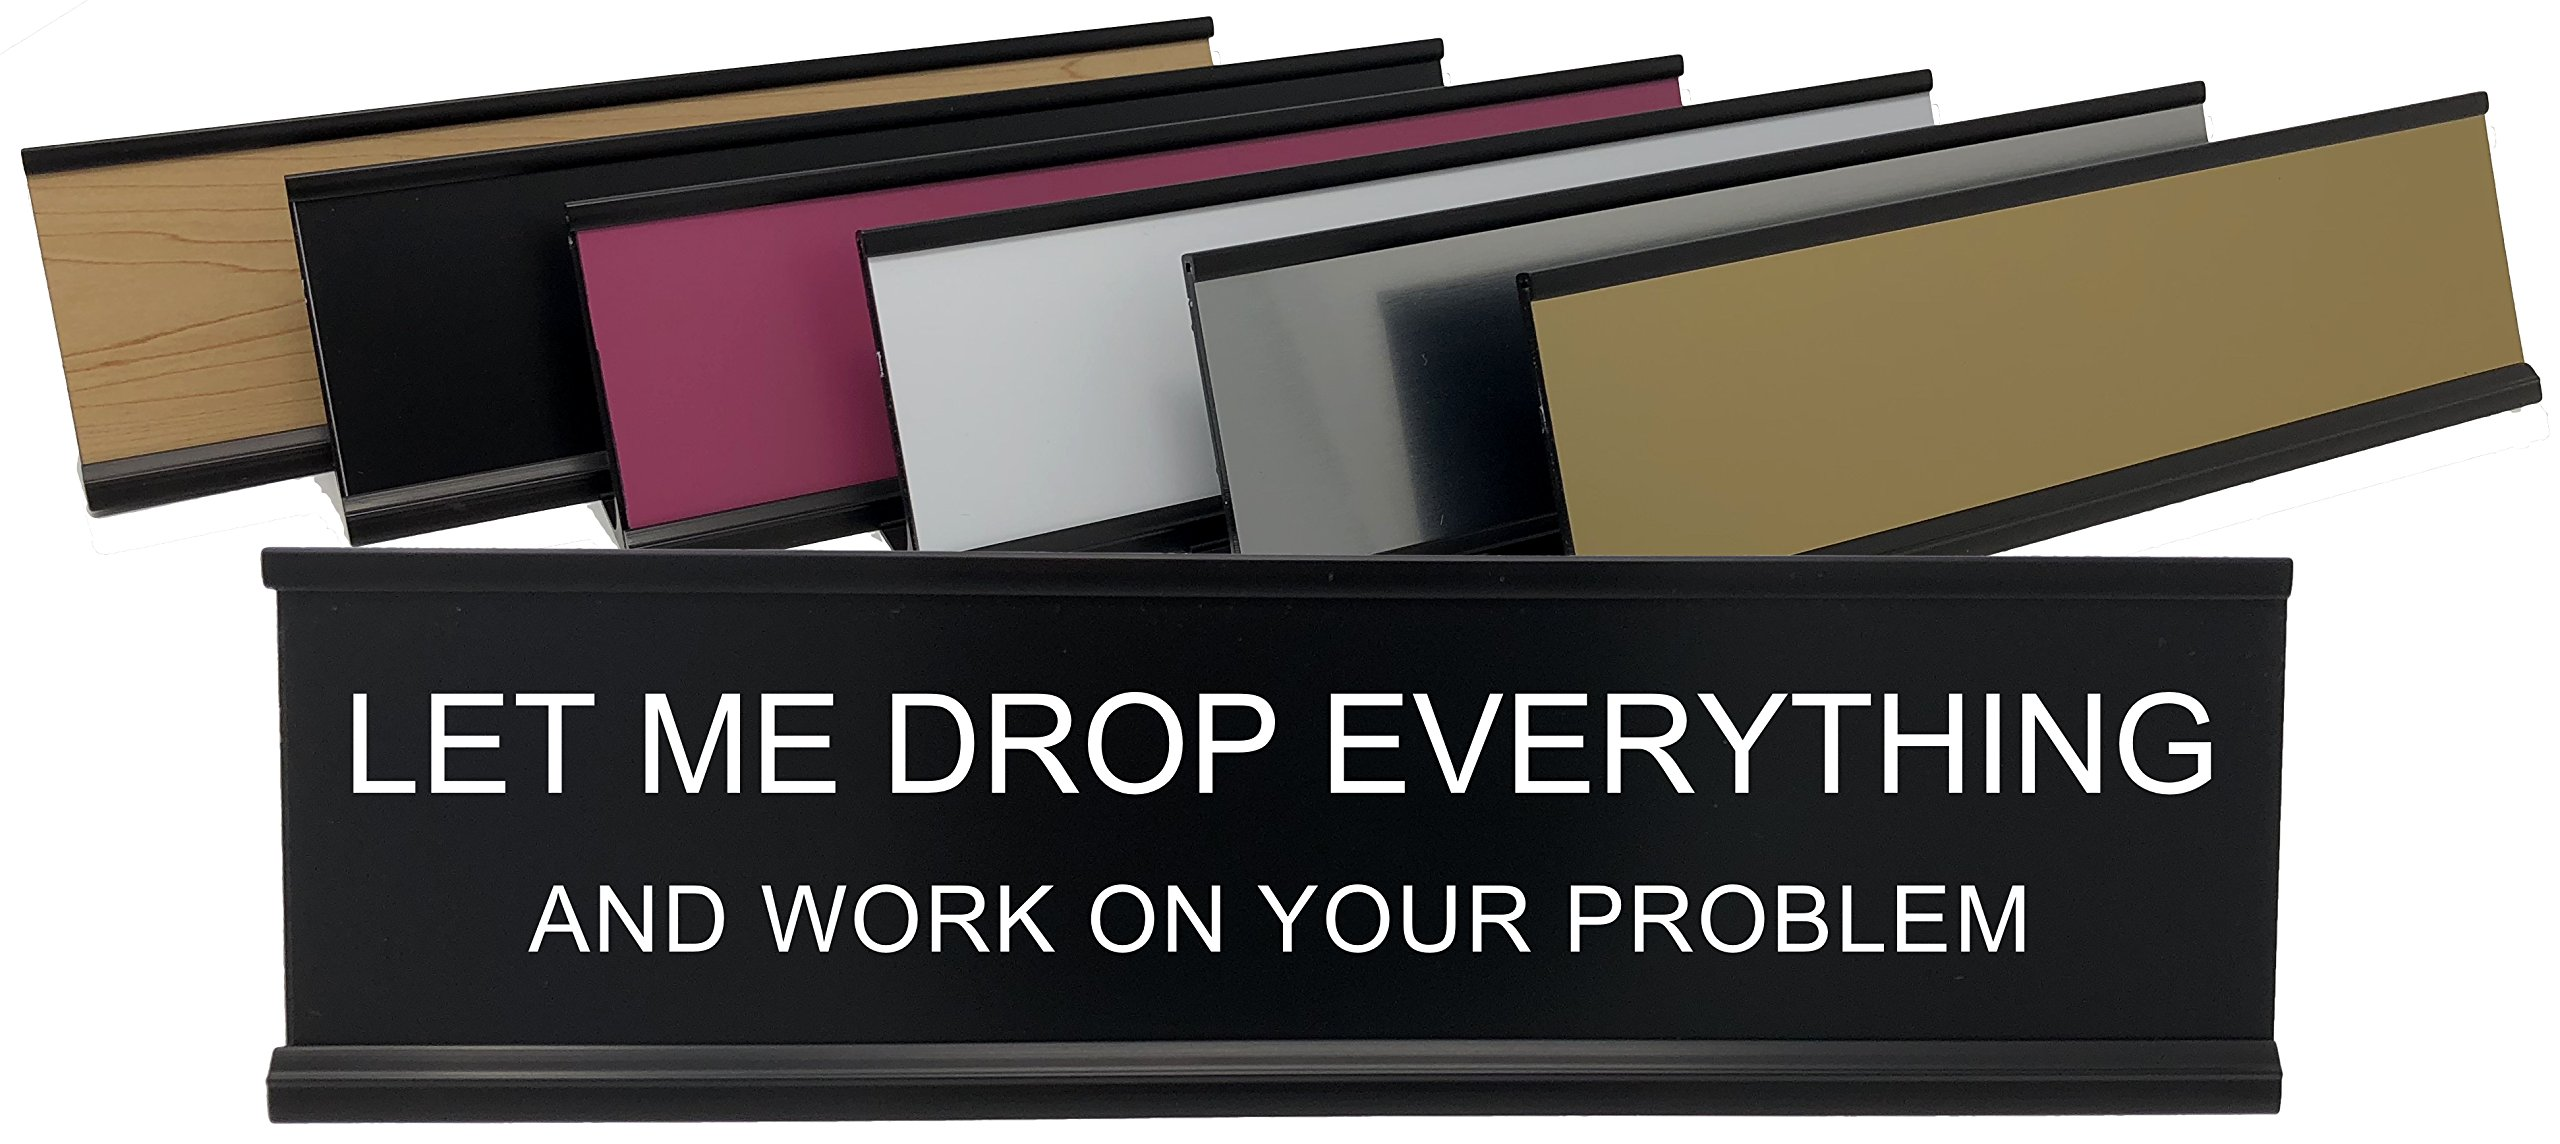 Let Me Drop Everything and Work On Your Problem - Lotsa Laughs Funny Desk Plate by Griffco Supply (Pink w/ black text)